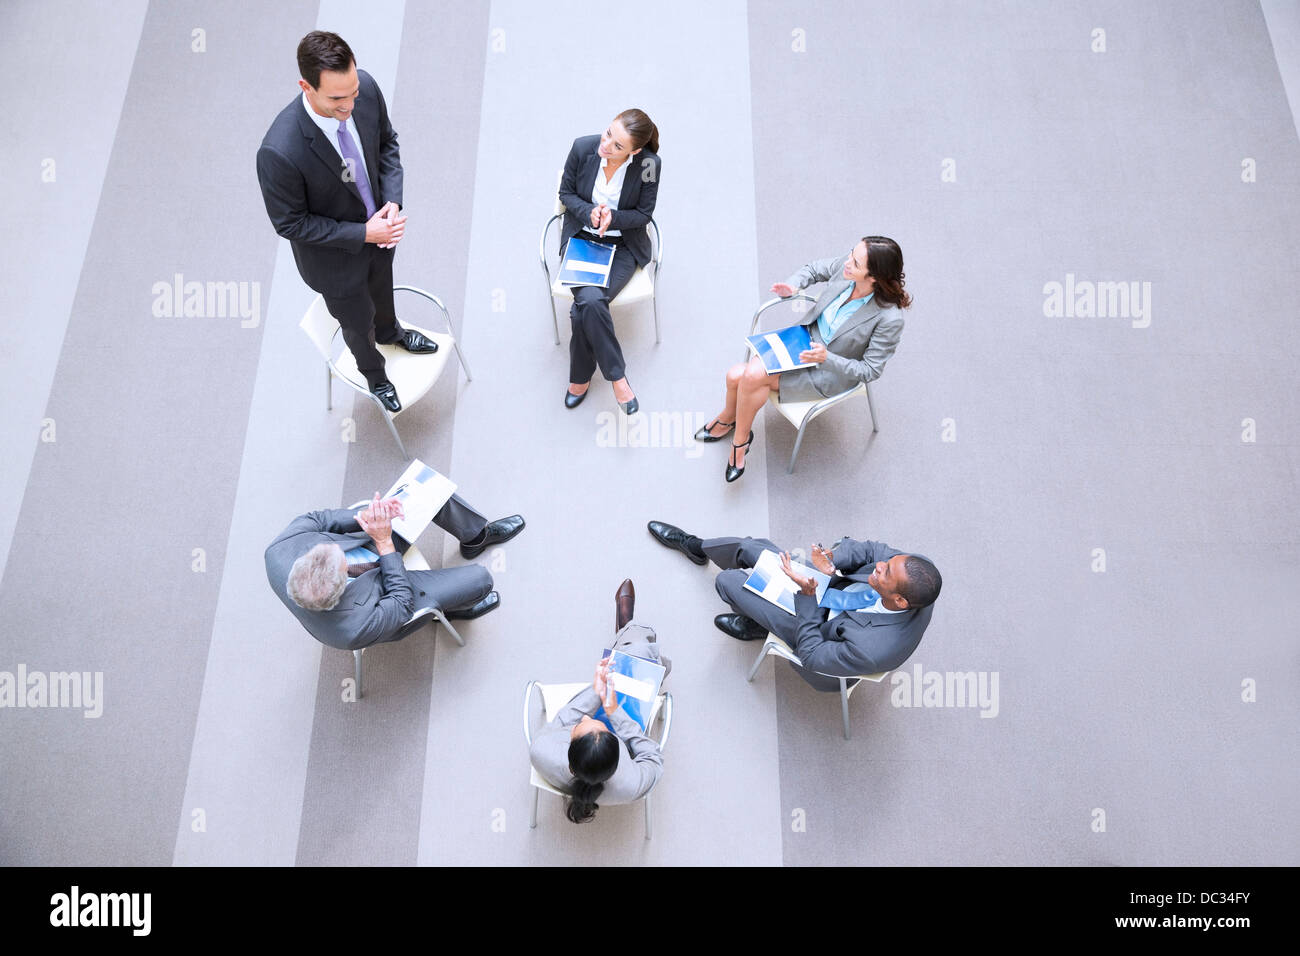 High angle view of businessman standing on chair in circle with co-workers - Stock Image